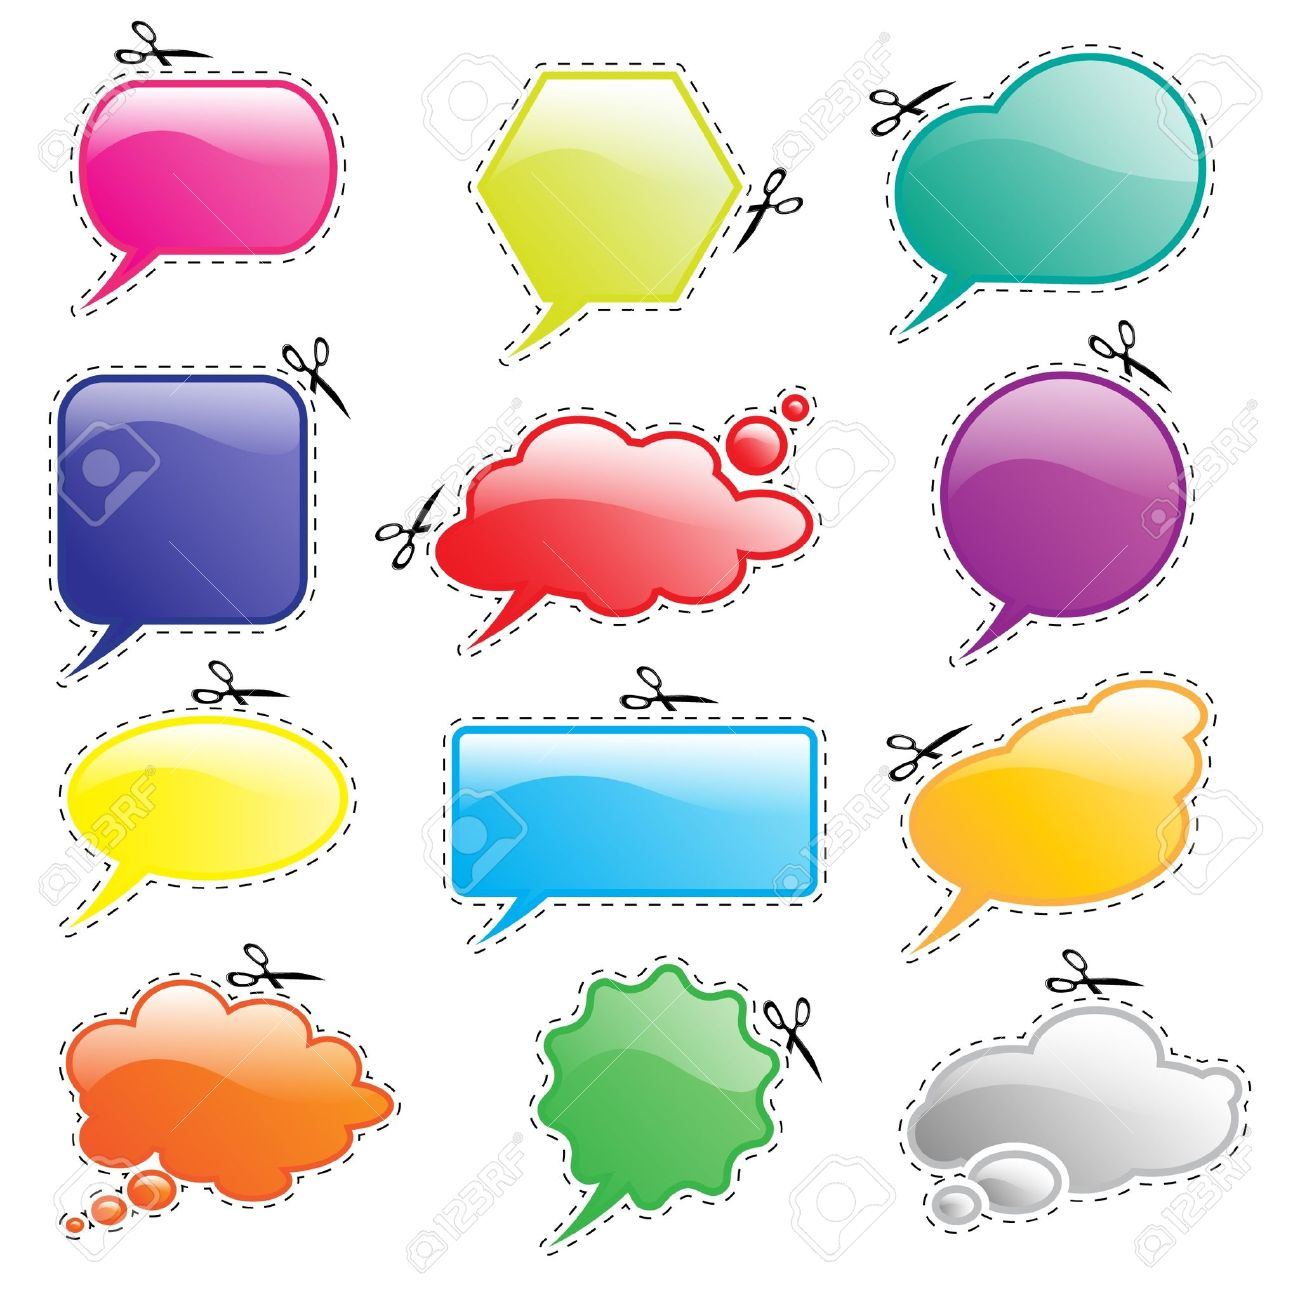 Glossy Speech And Think Bubbles In Bright Colours With Cutout.